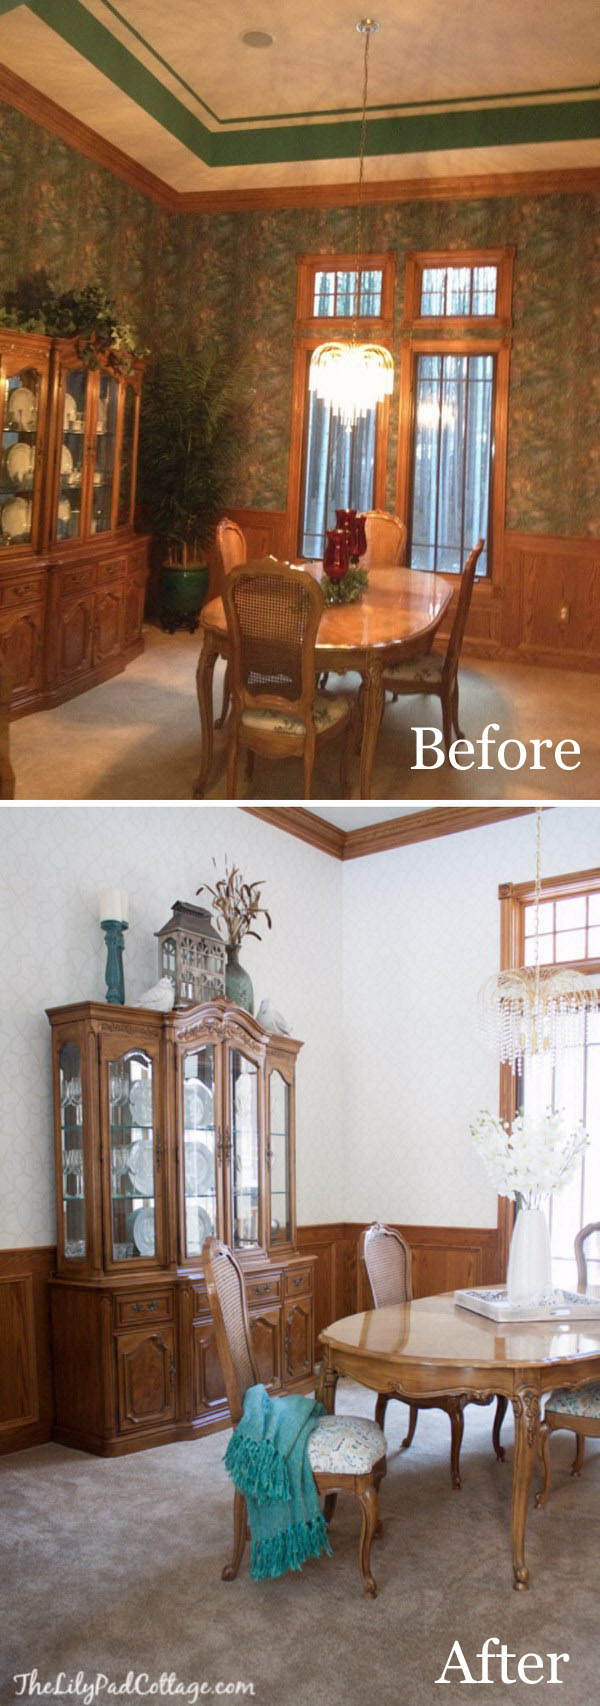 dining room makeover ideas. Great Transformation With Just Changing Out The Dark Wall Paper Dining Room Makeover Ideas